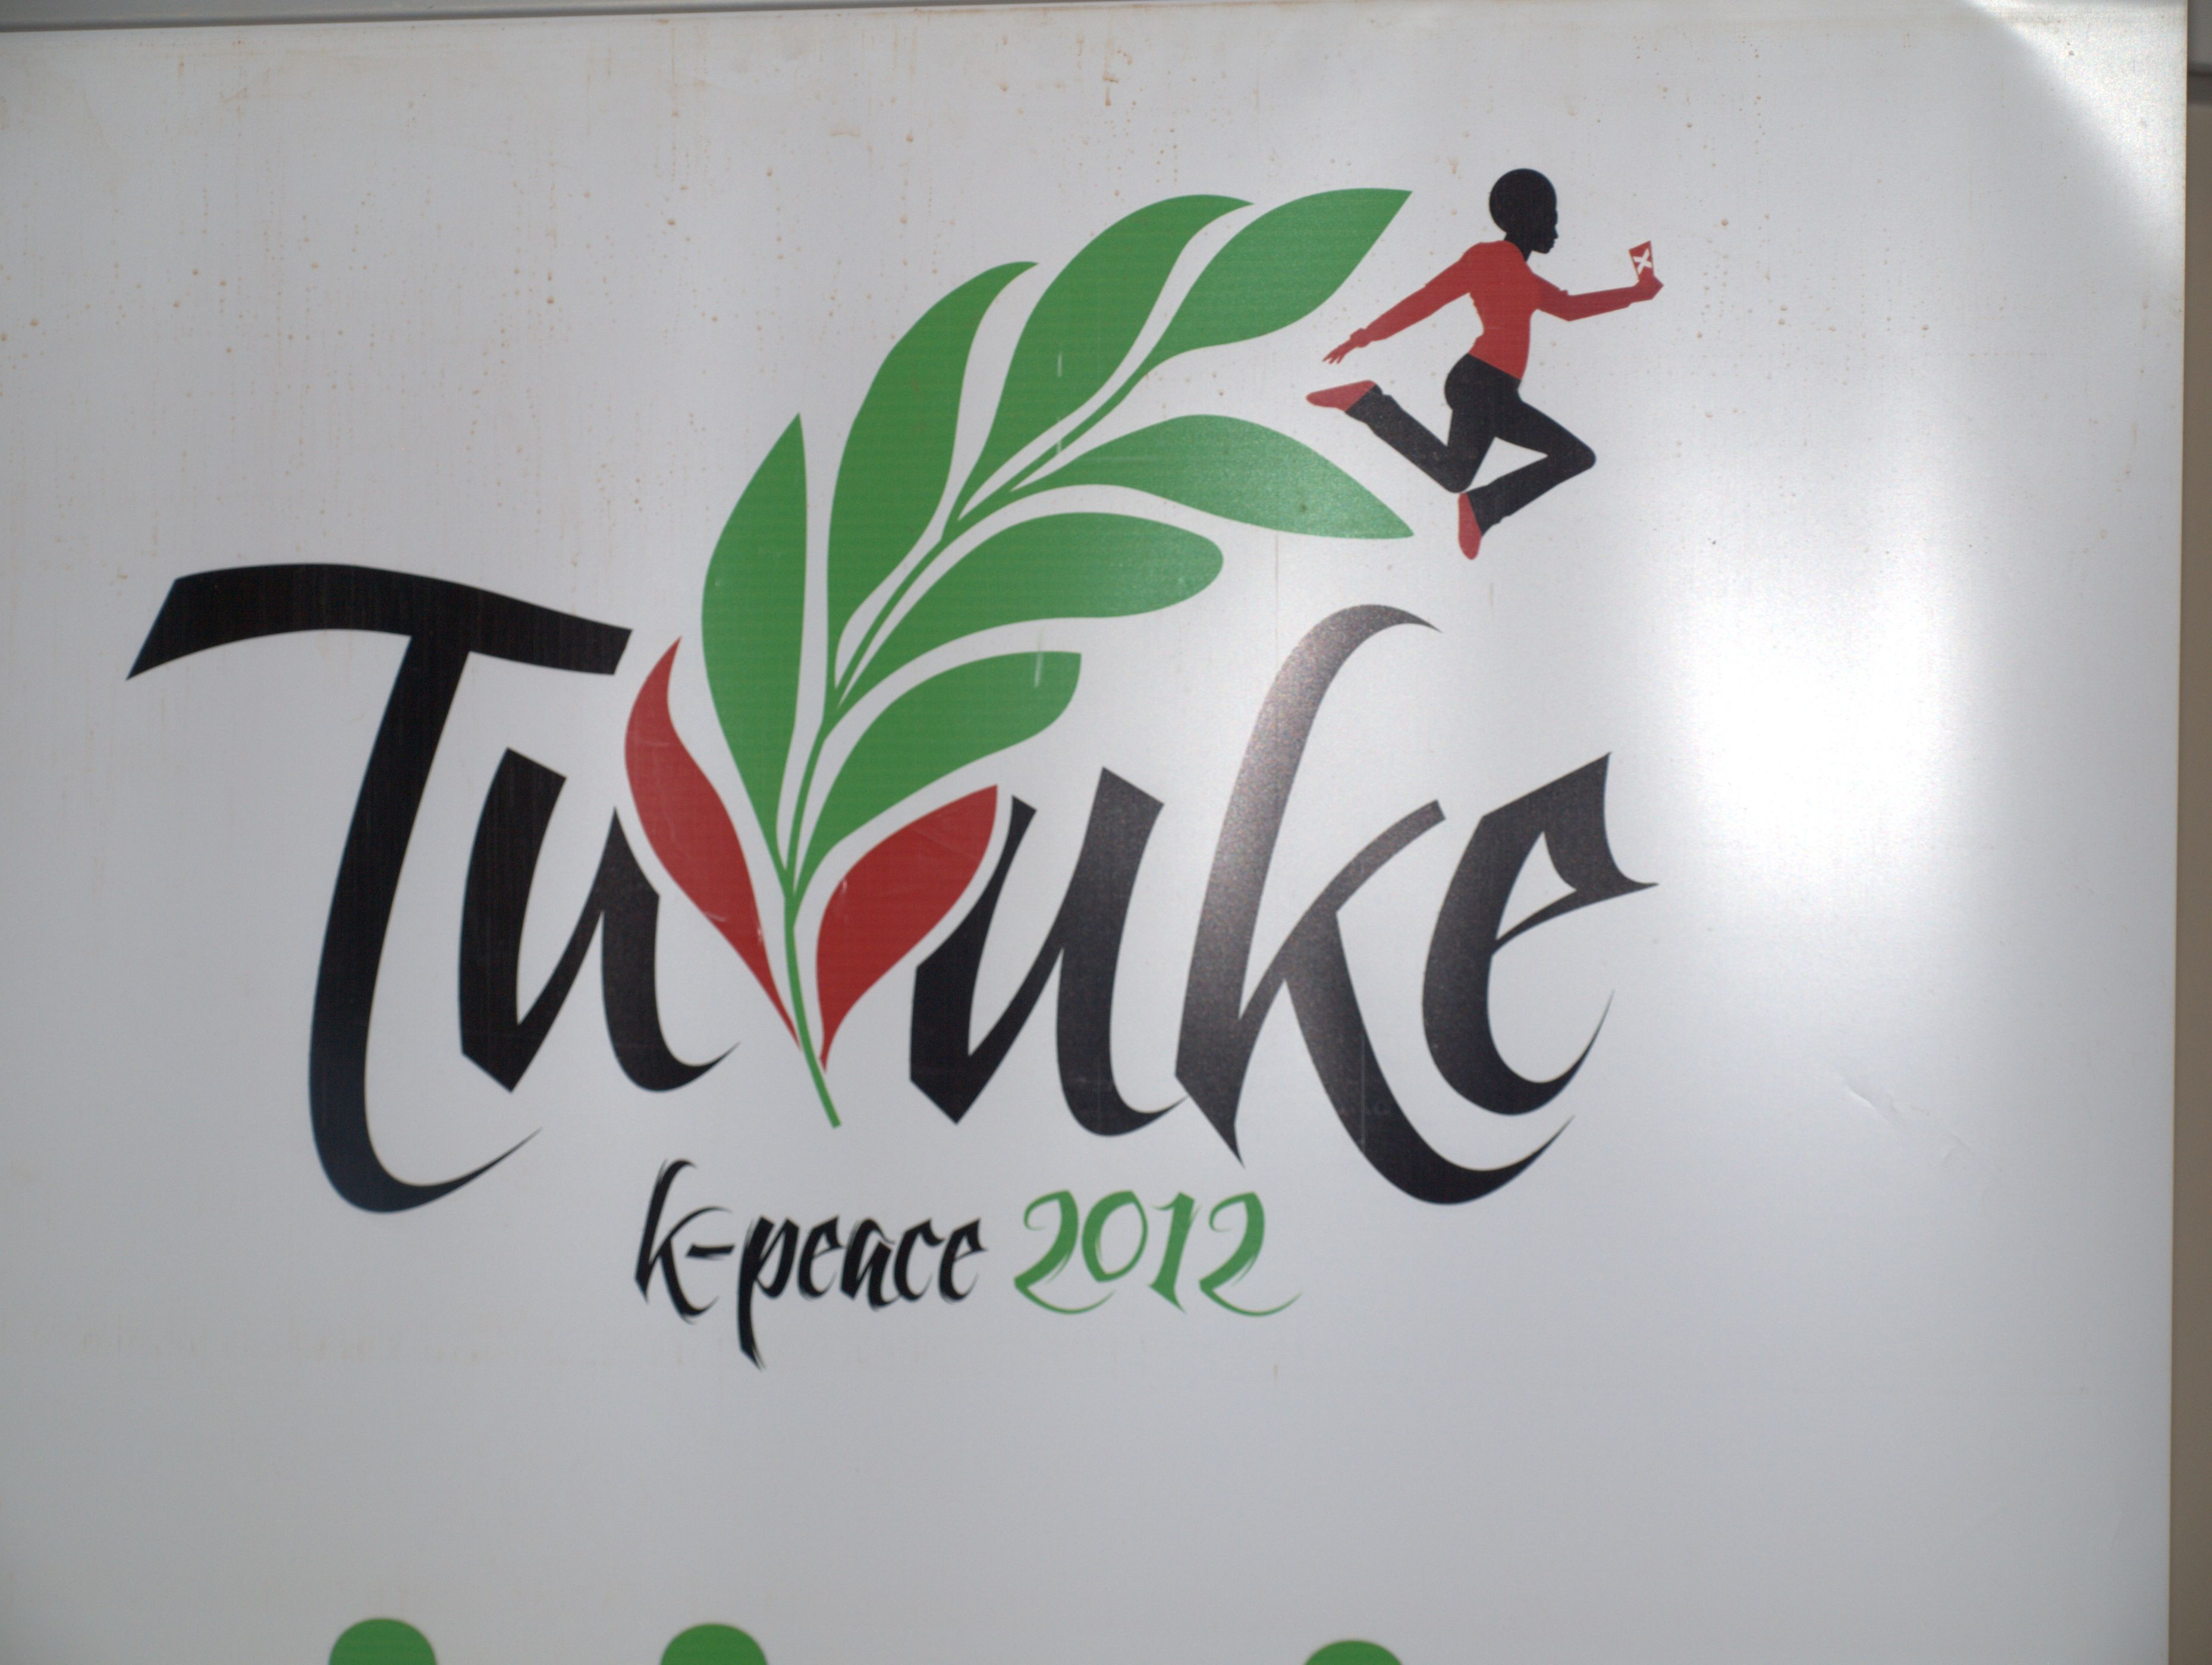 At Hatua Dinner 2012 where Tuvuke initiative was given was given a preview.